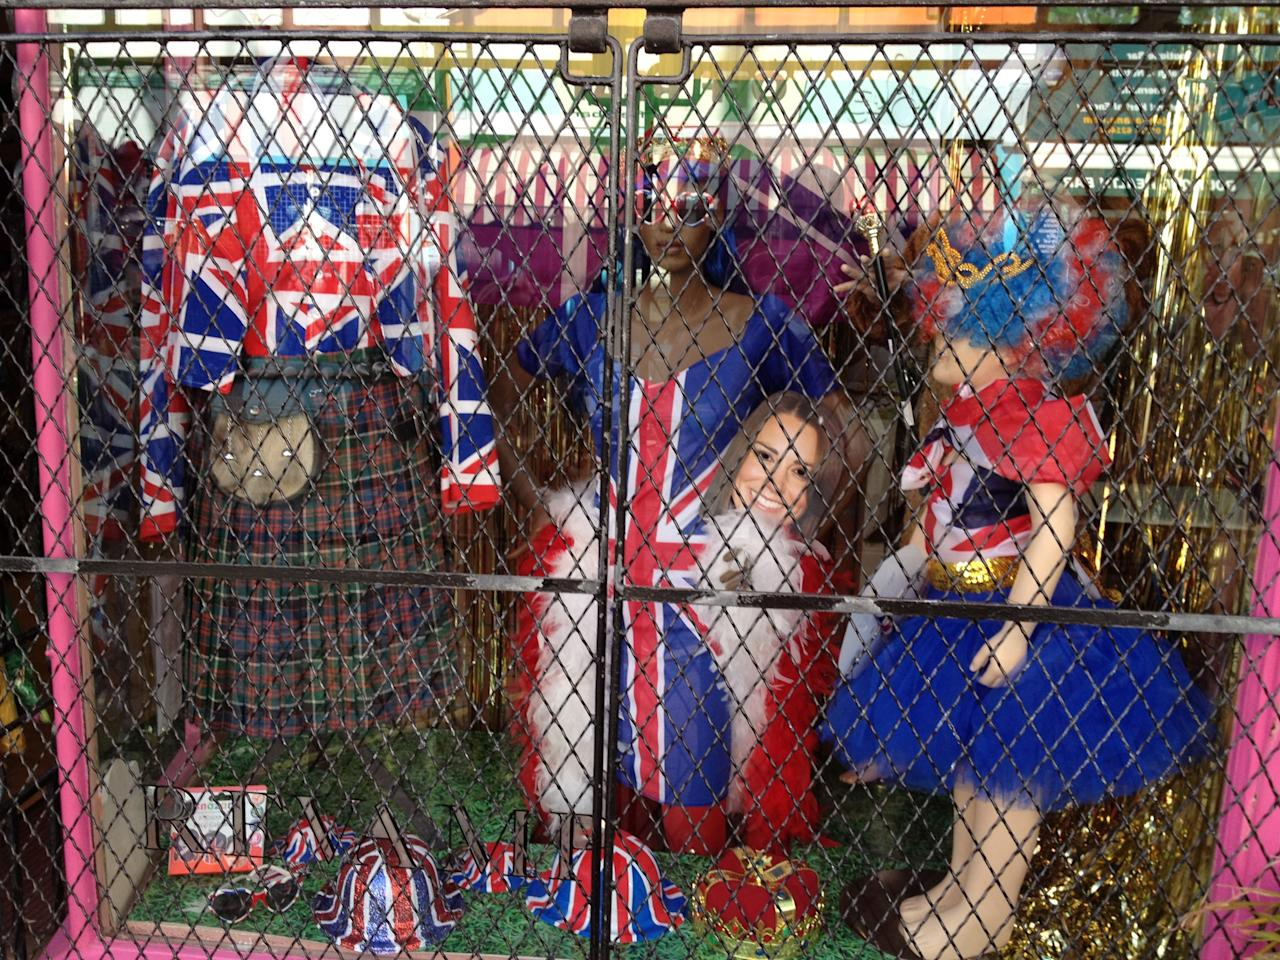 Dressing up for the Jubilee?